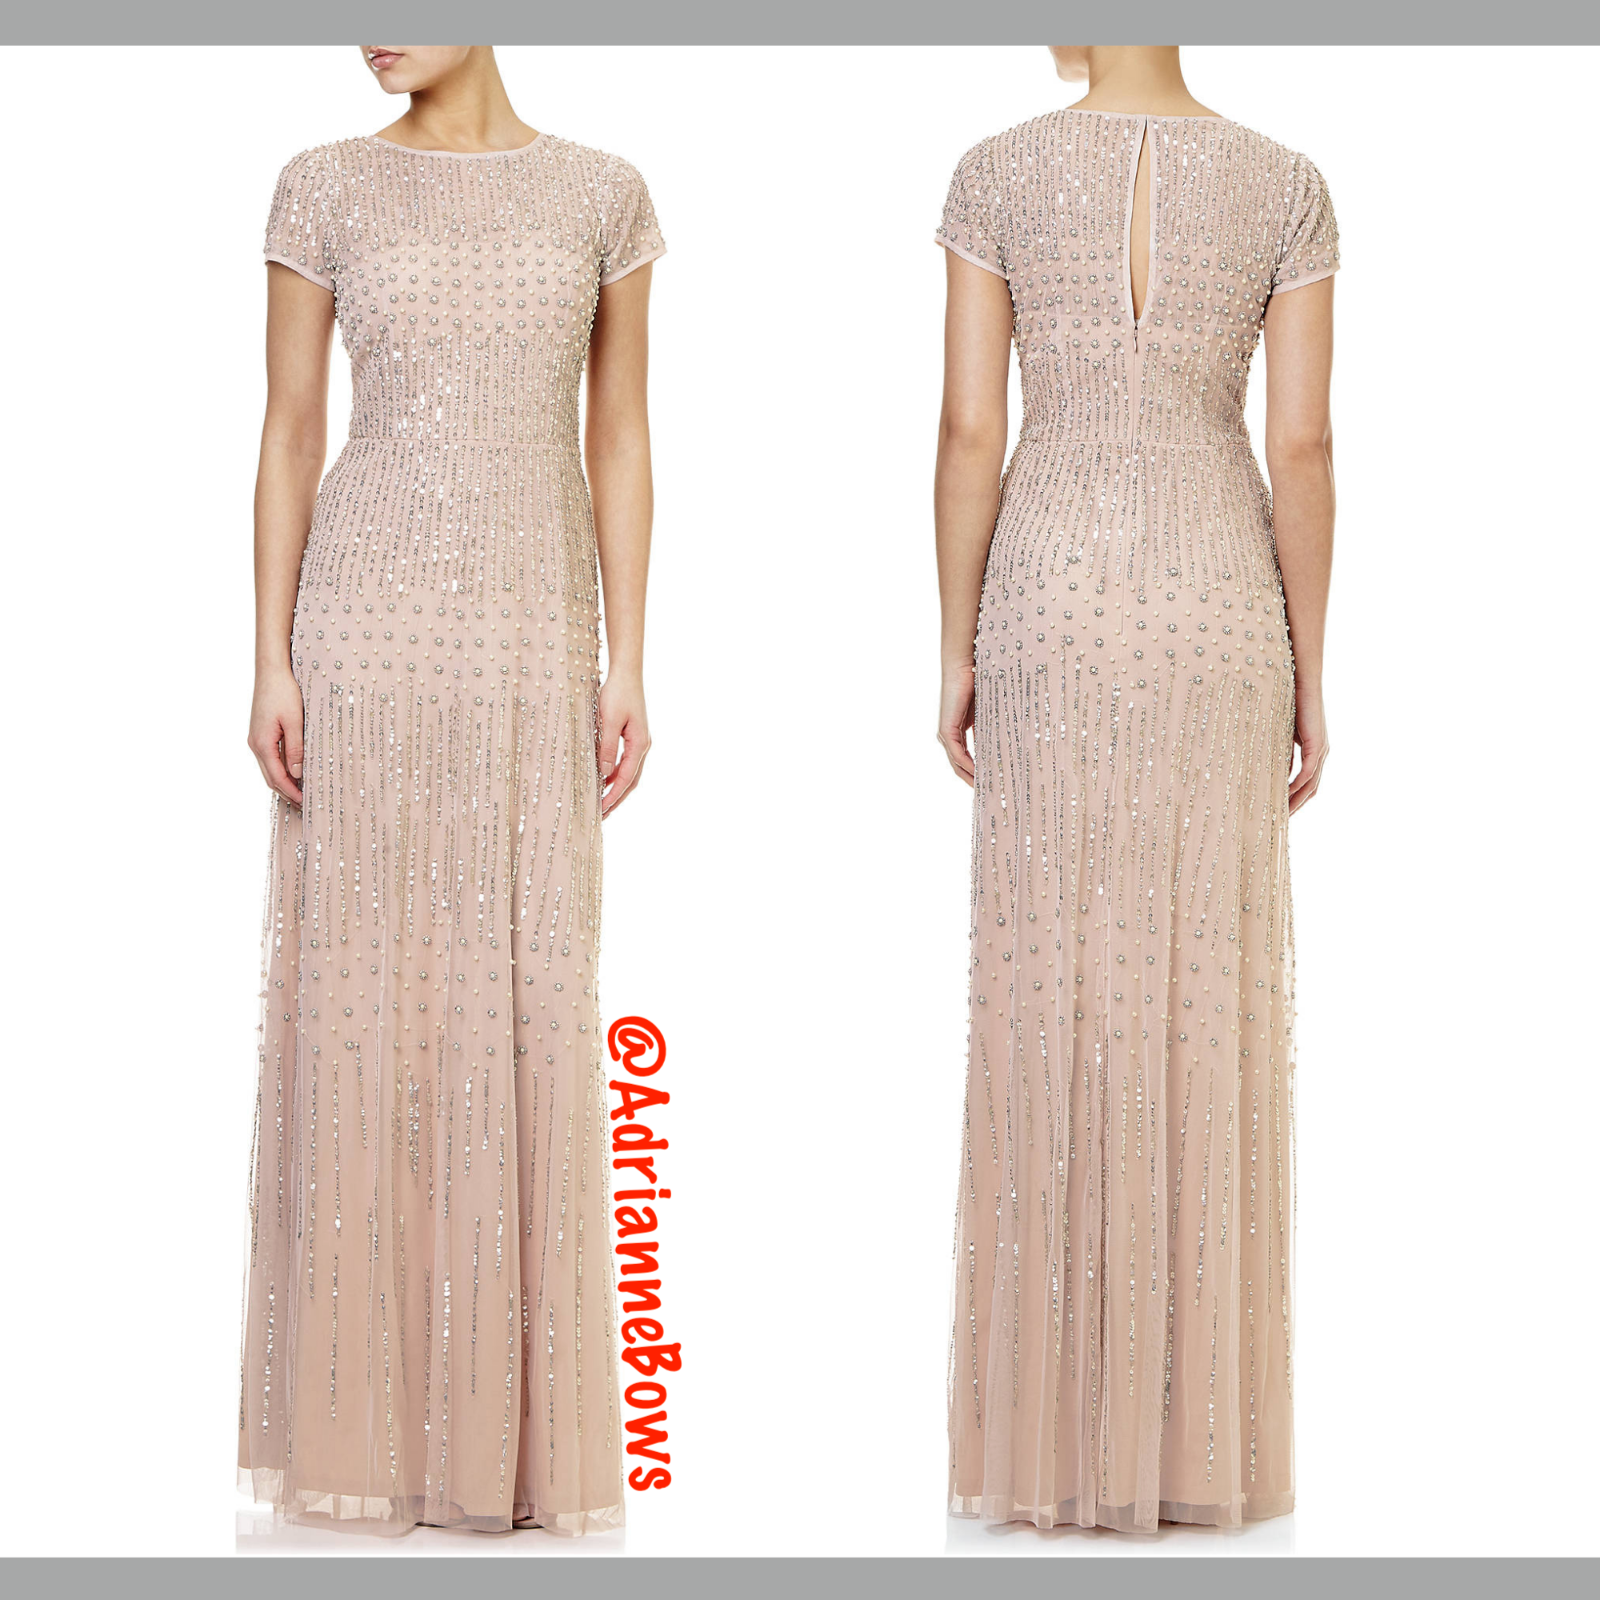 NEW Adrianna Papell Pearl Beaded Mesh Gown in Shell Pink [SZ 12 ] #N473